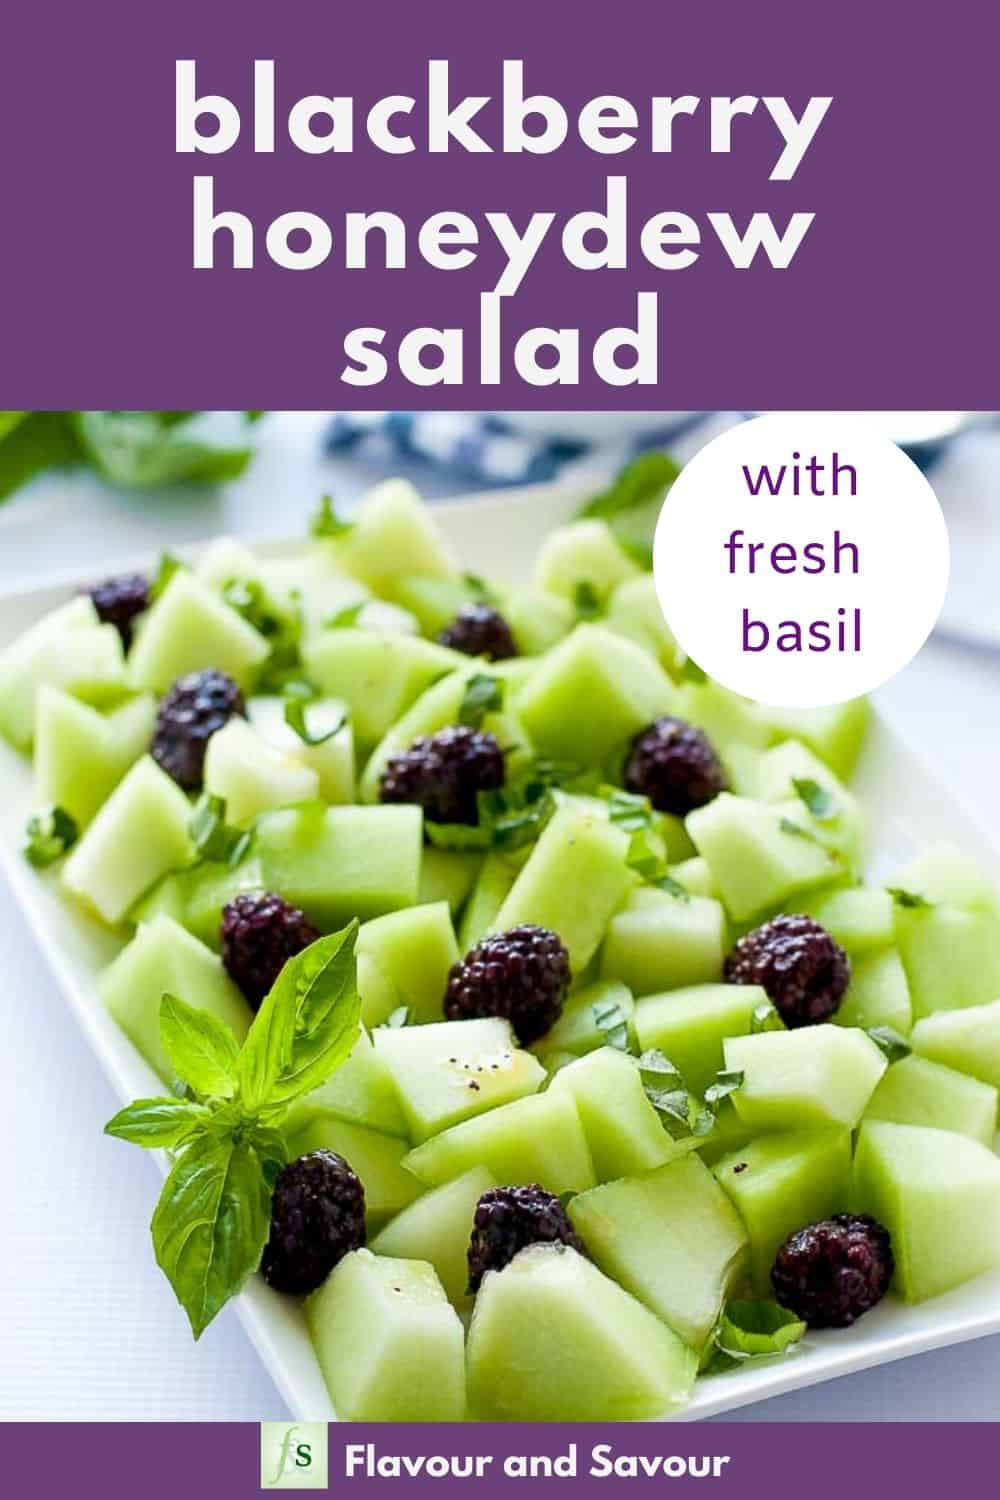 Honeydew Blackberry Salad with fresh basil with text overlay